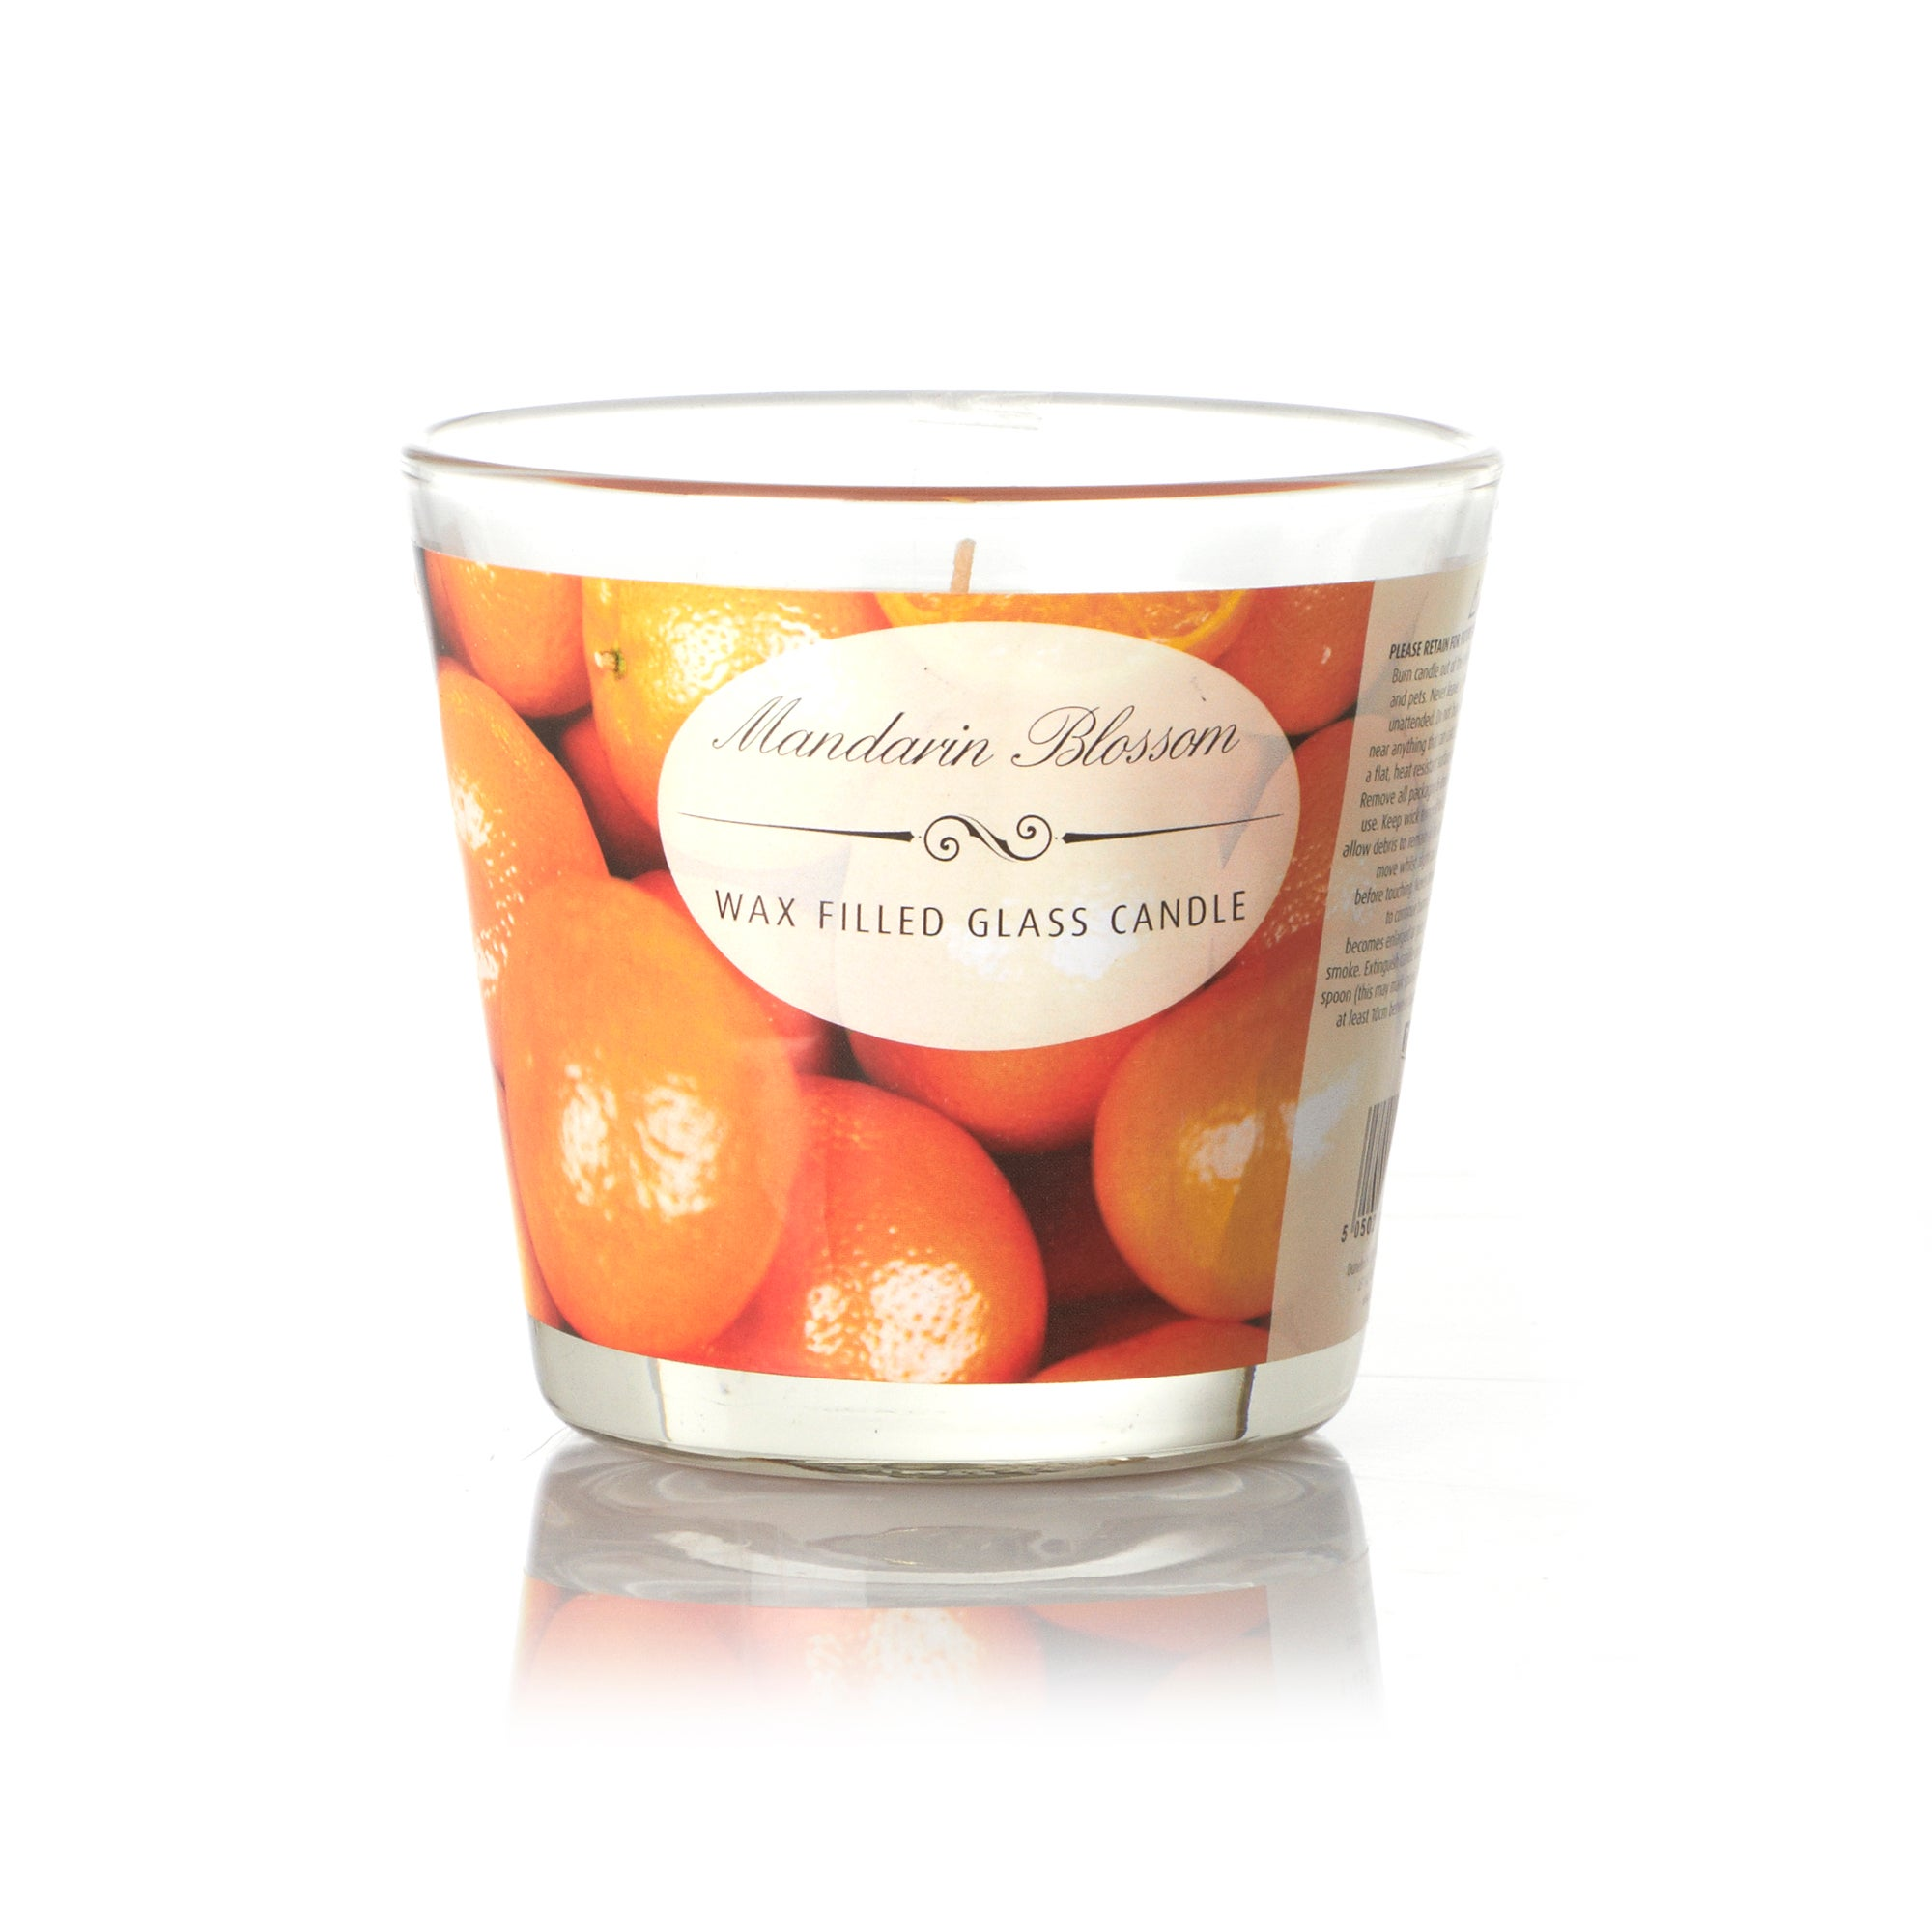 Mandarin Blossom Wax Filled Glass Candle